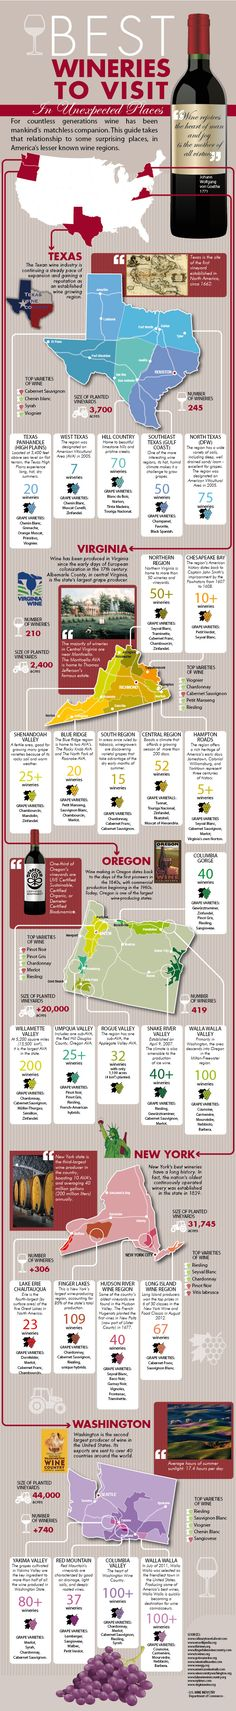 Wineries in the US - Texas, Virginia, Oregon, New York and Washington wine country